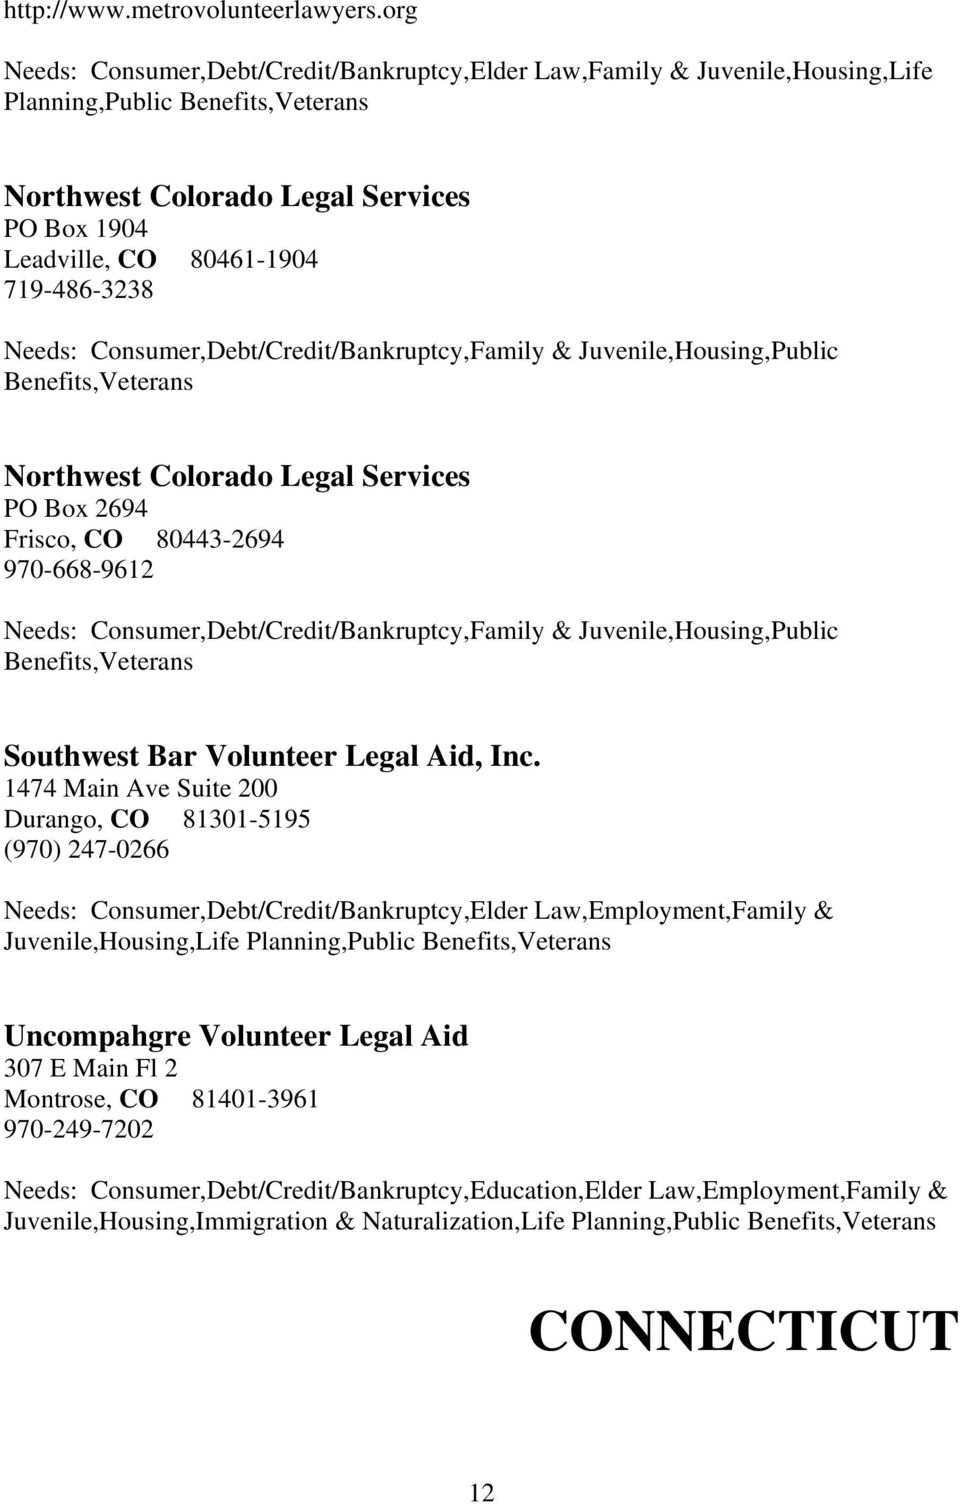 719-486-3238 Needs: Consumer,Debt/Credit/Bankruptcy,Family & Juvenile,Housing,Public Benefits,Veterans Northwest Colorado Legal Services PO Box 2694 Frisco, CO 80443-2694 970-668-9612 Needs: